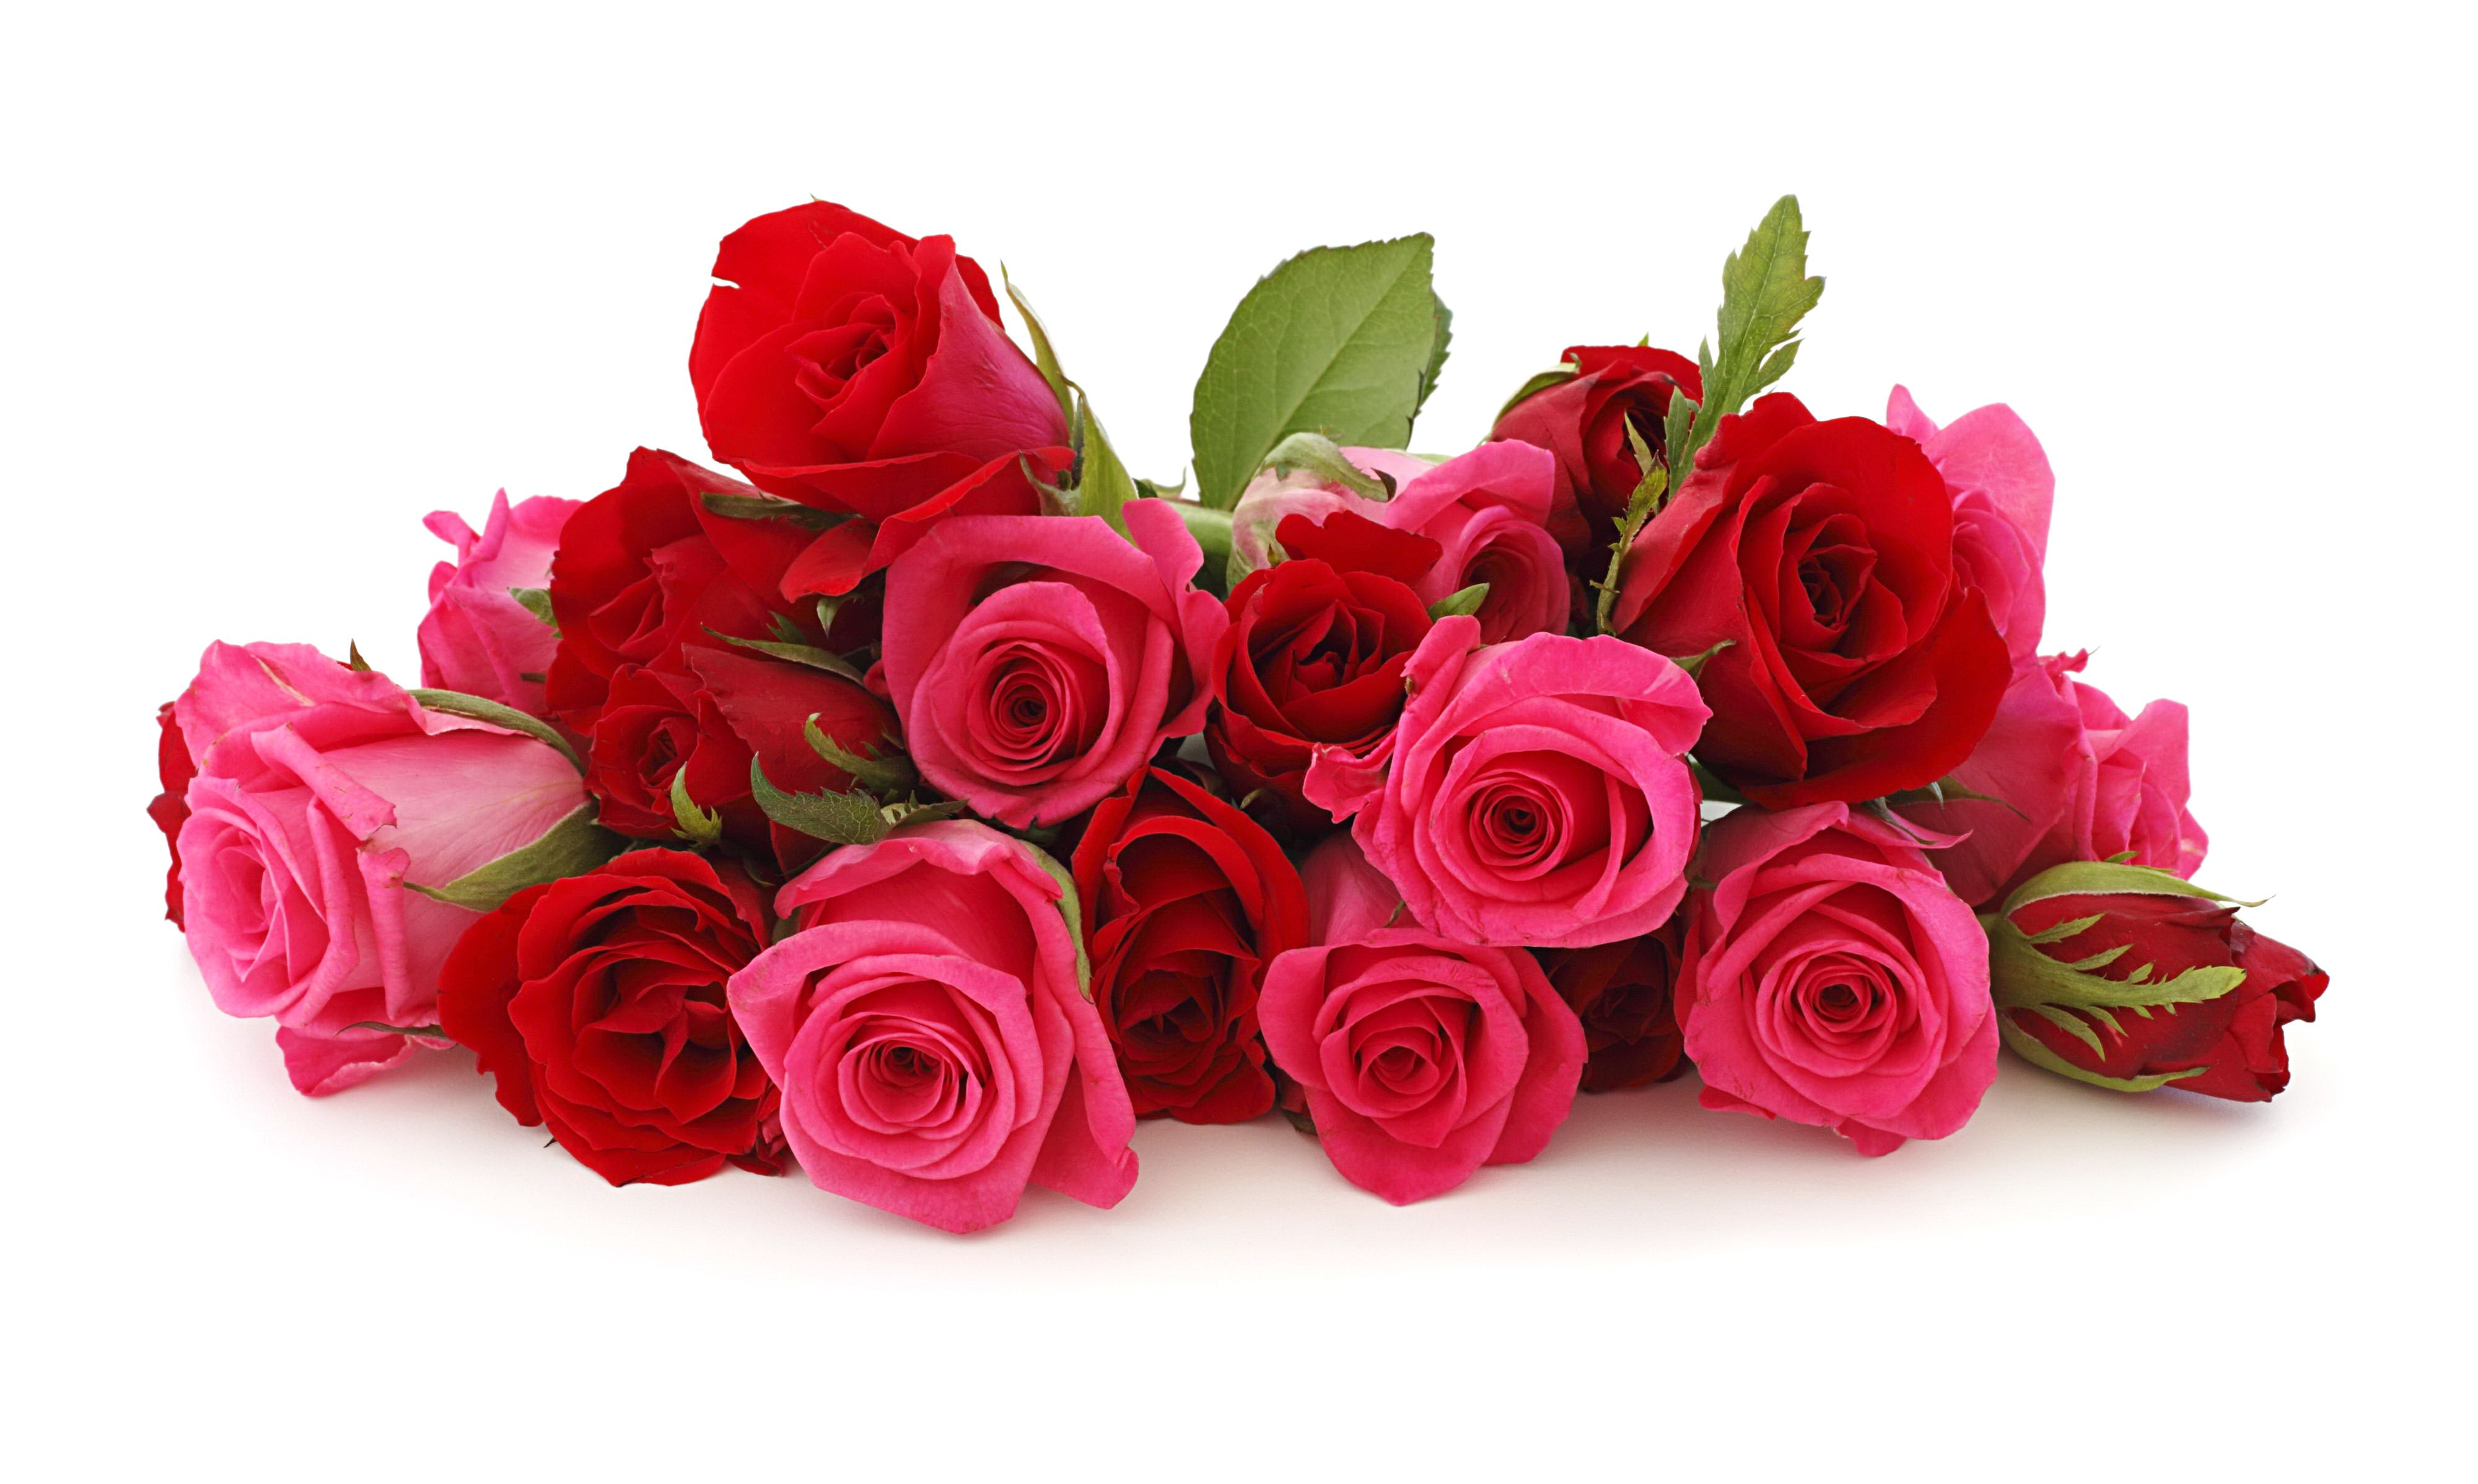 Cute Red And Pink Rose Flowers Bouquet Screensavers For Free